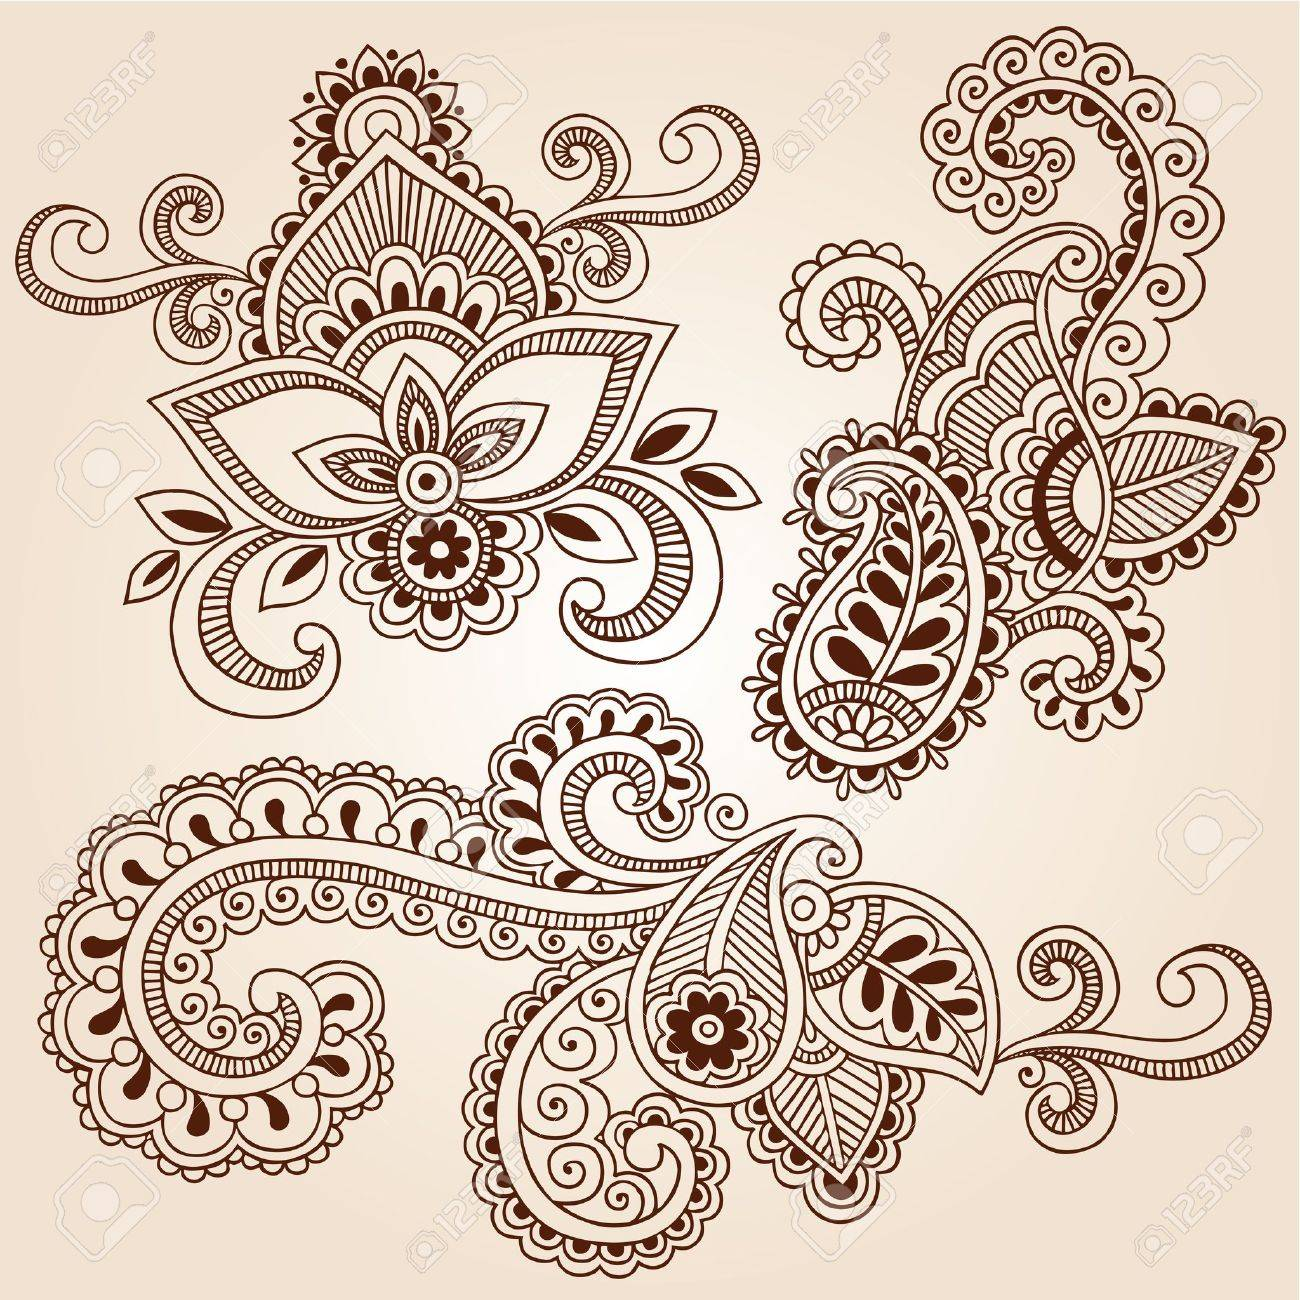 Hand-Drawn Henna Paisley Flowers Mehndi Doodles Abstract Floral Vector Illustration Design Elements Stock Vector - 14568416